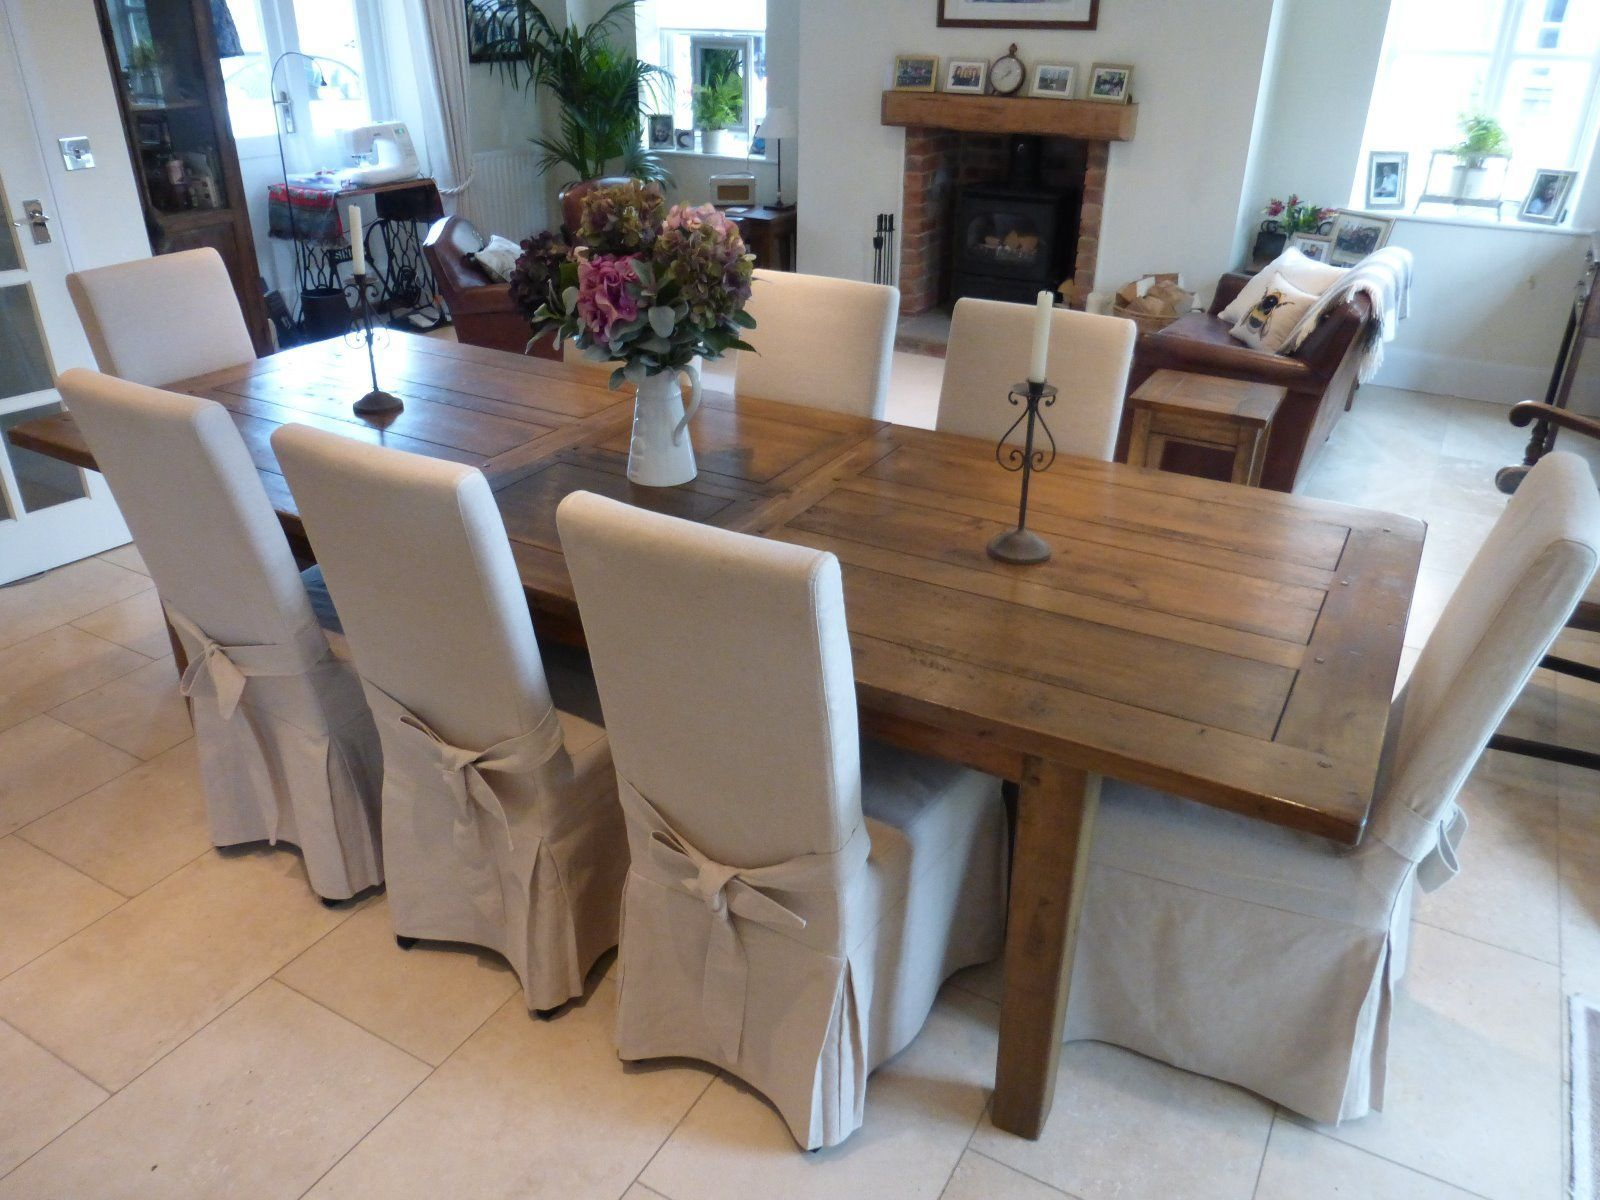 barker and stonehouse oak dining table and 8 chairs - Oak Dining Table And 8 Chairs